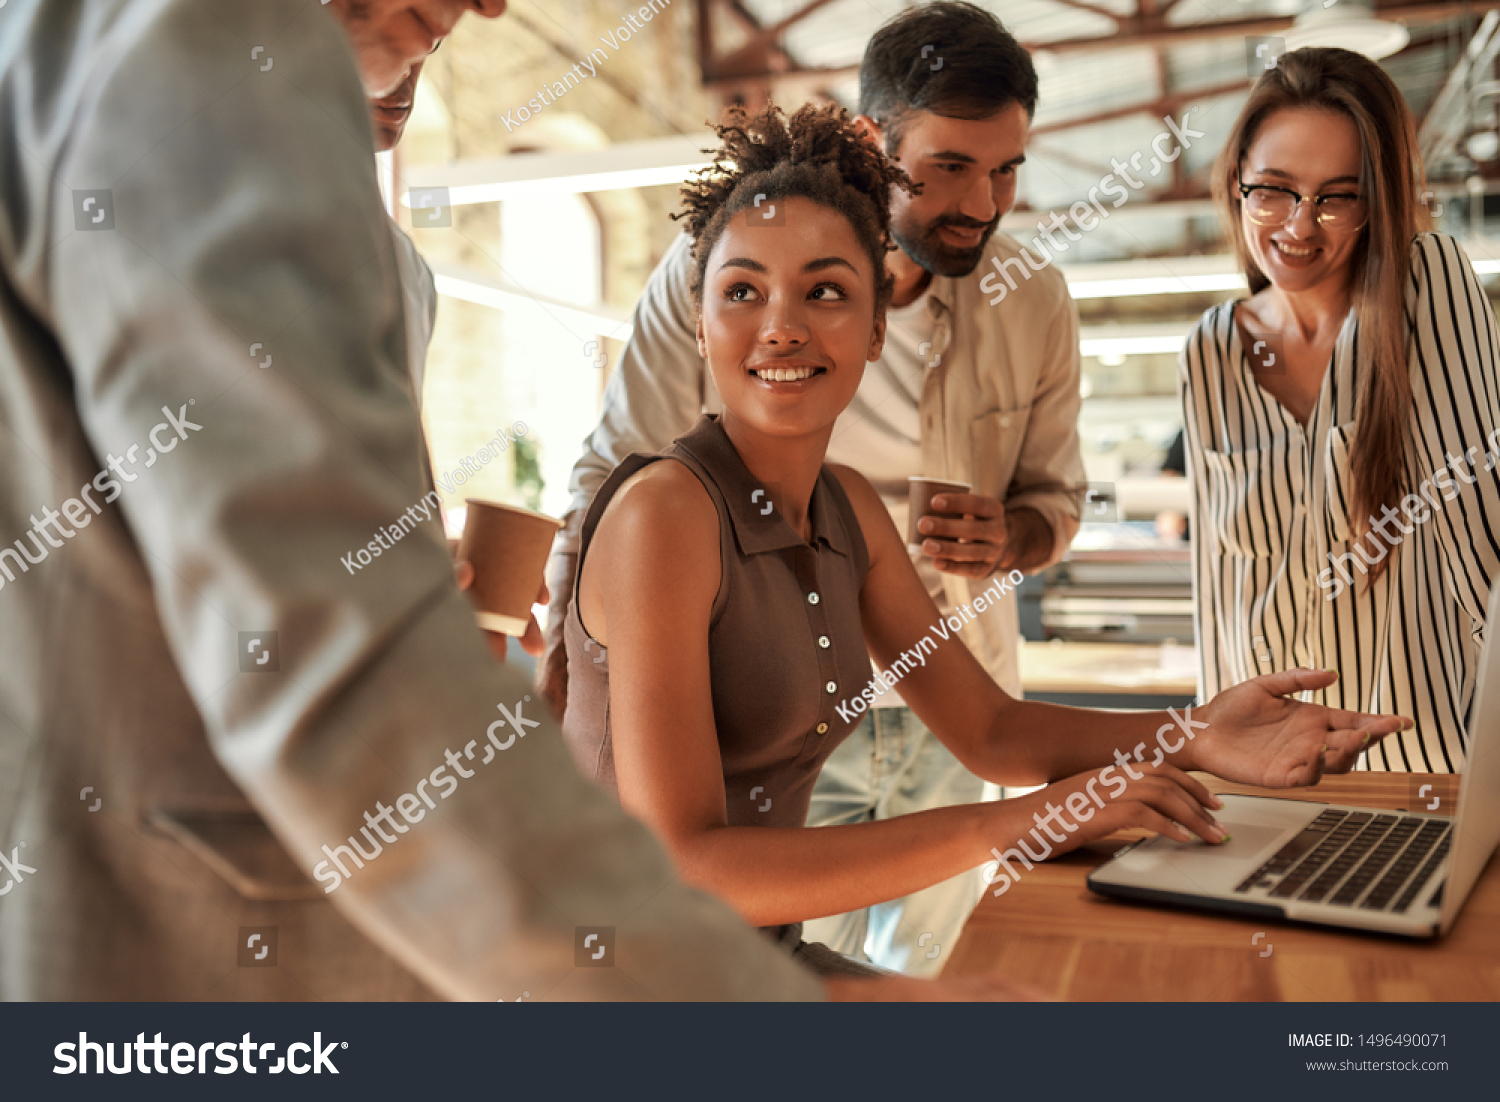 Working together. Young and cheerful afro american woman using laptop and discussing something with colleagues while sitting in the modern office. Teamwork. Office life #1496490071